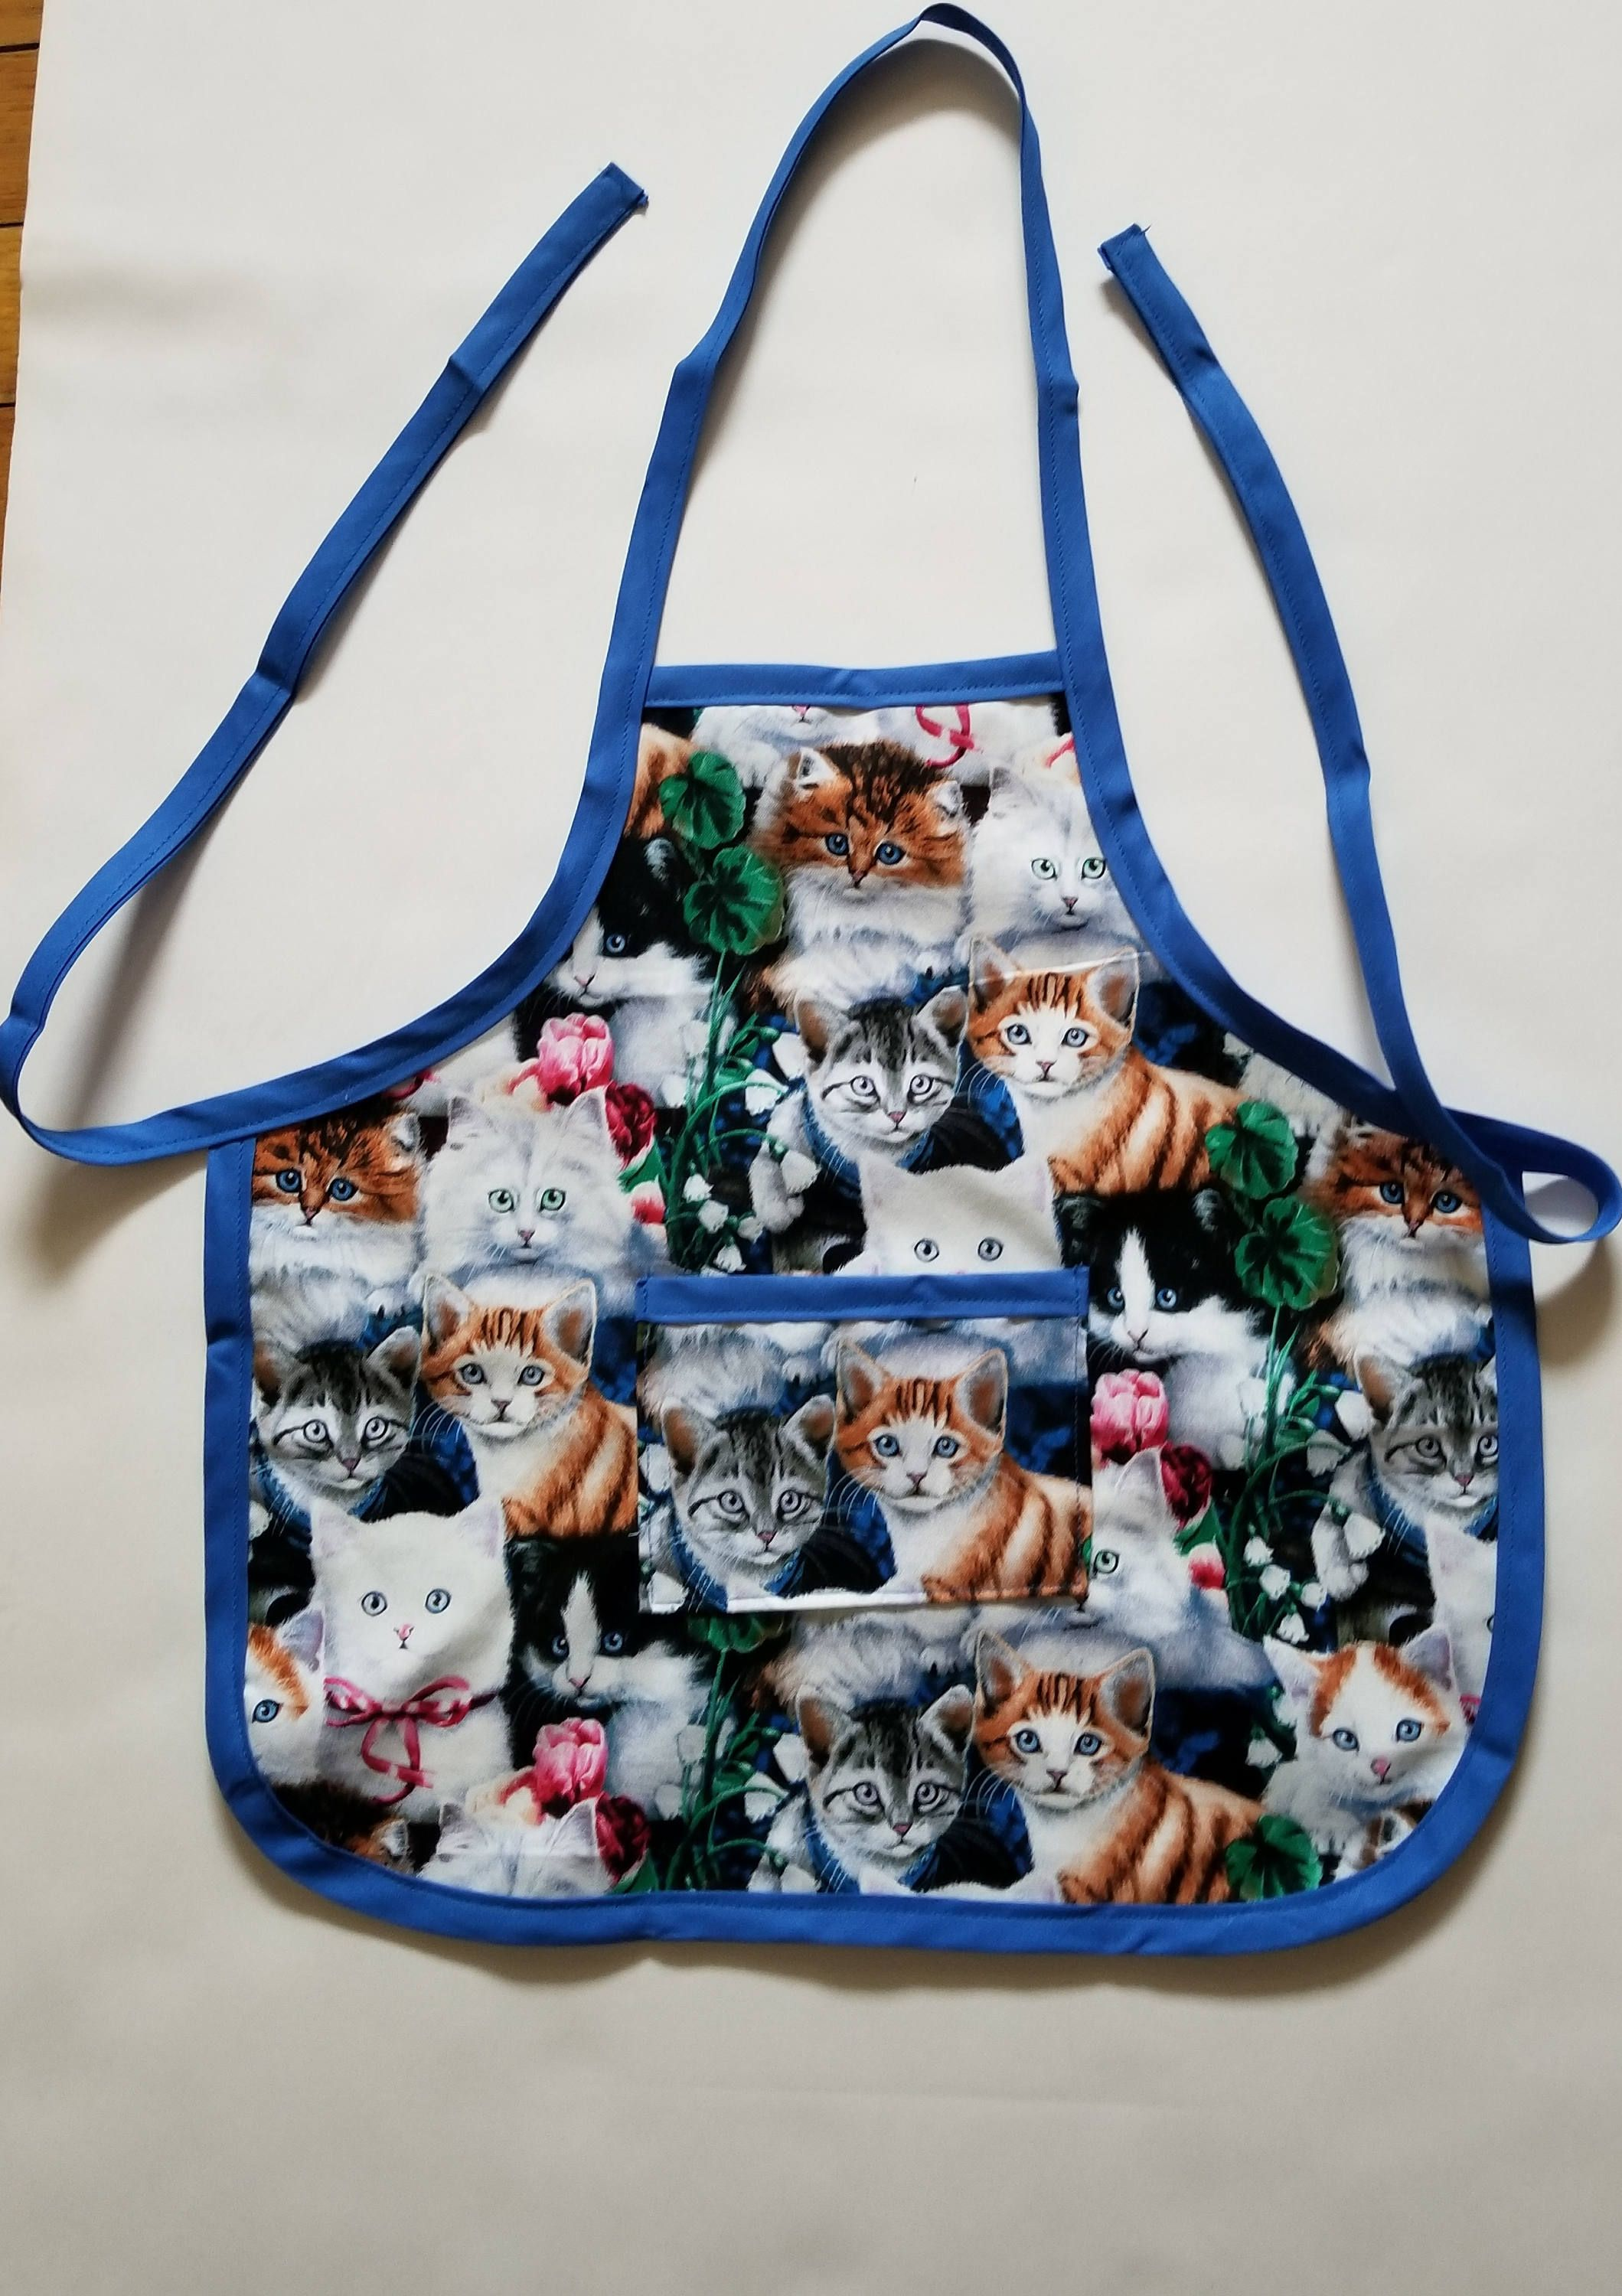 Cat Toddler Apron Kitten Toddler Apron Kid S Aprons Kid S Cat Aprons Kid S Toddler Aprons Aprons For Toddlers Aprons Toddler Apron Kids Apron Childrens Aprons